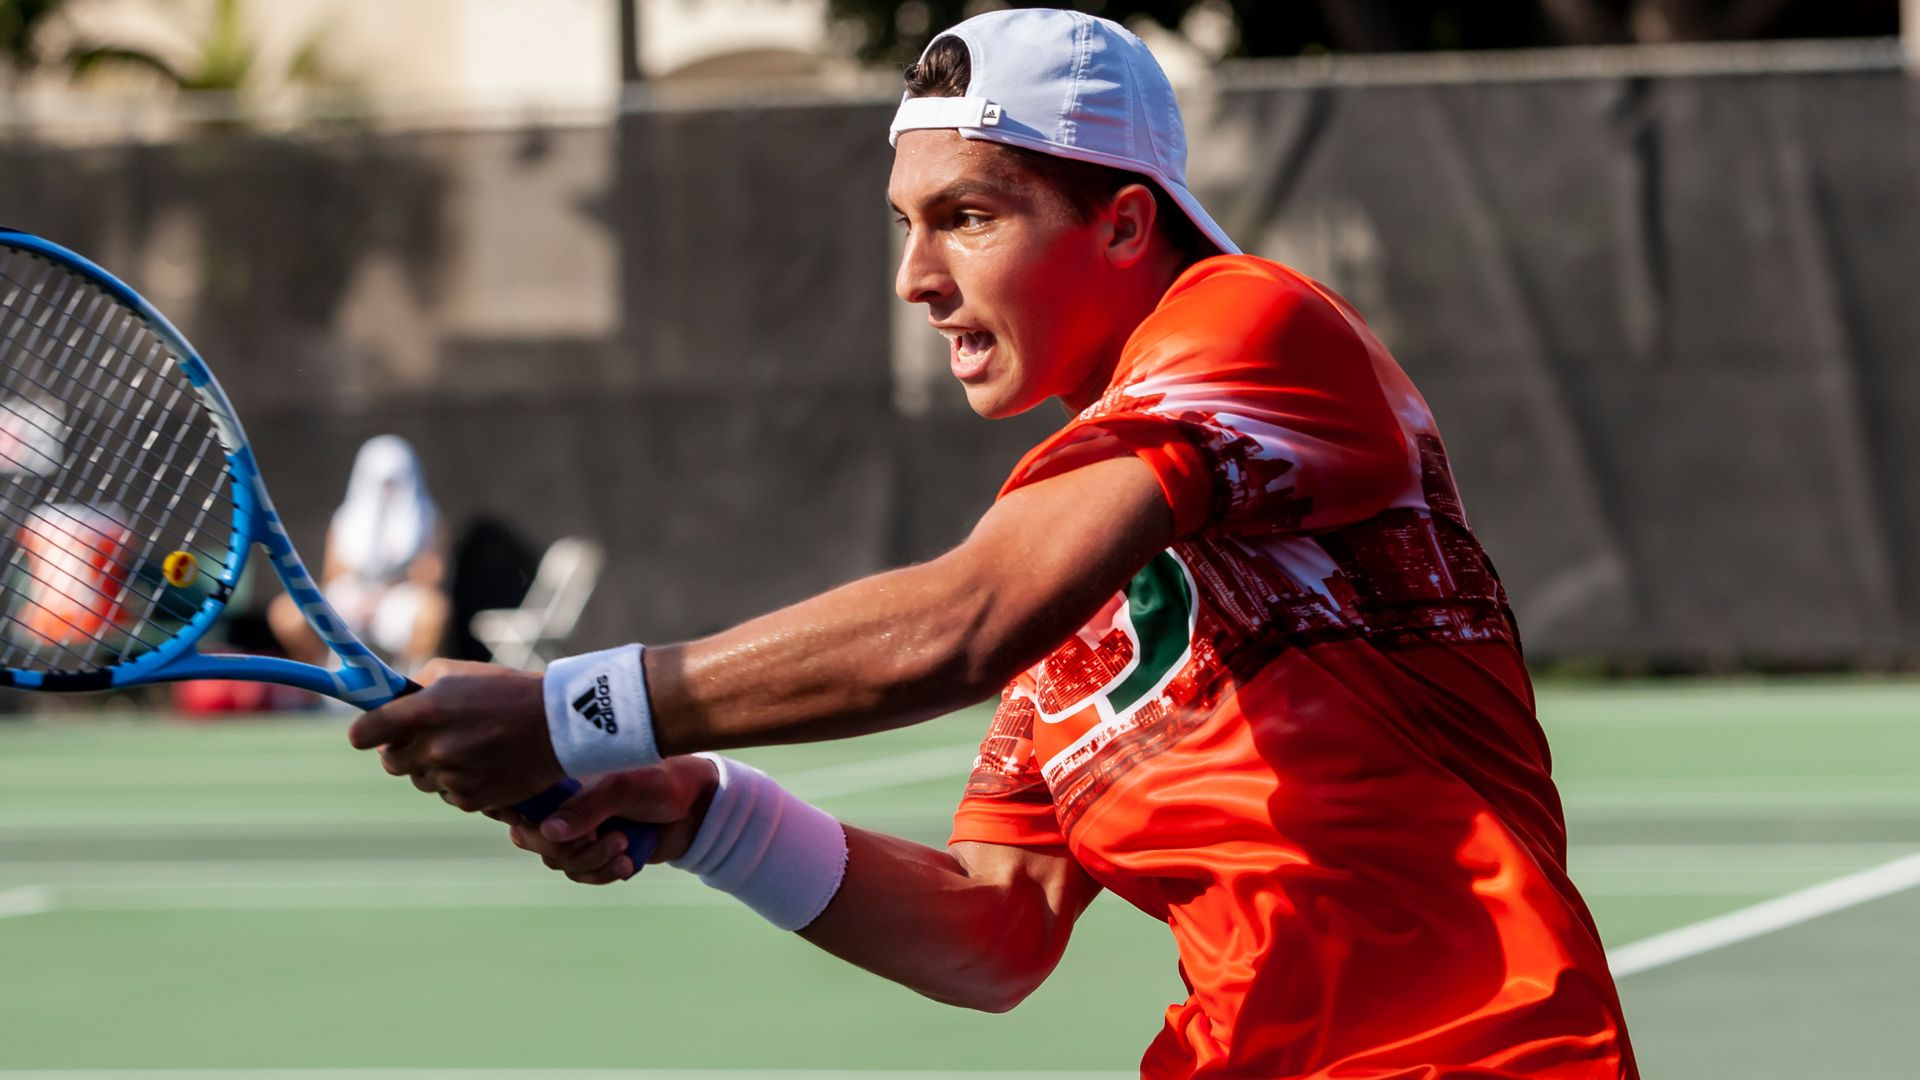 Canes Conclude Play at Miami Spring Invite